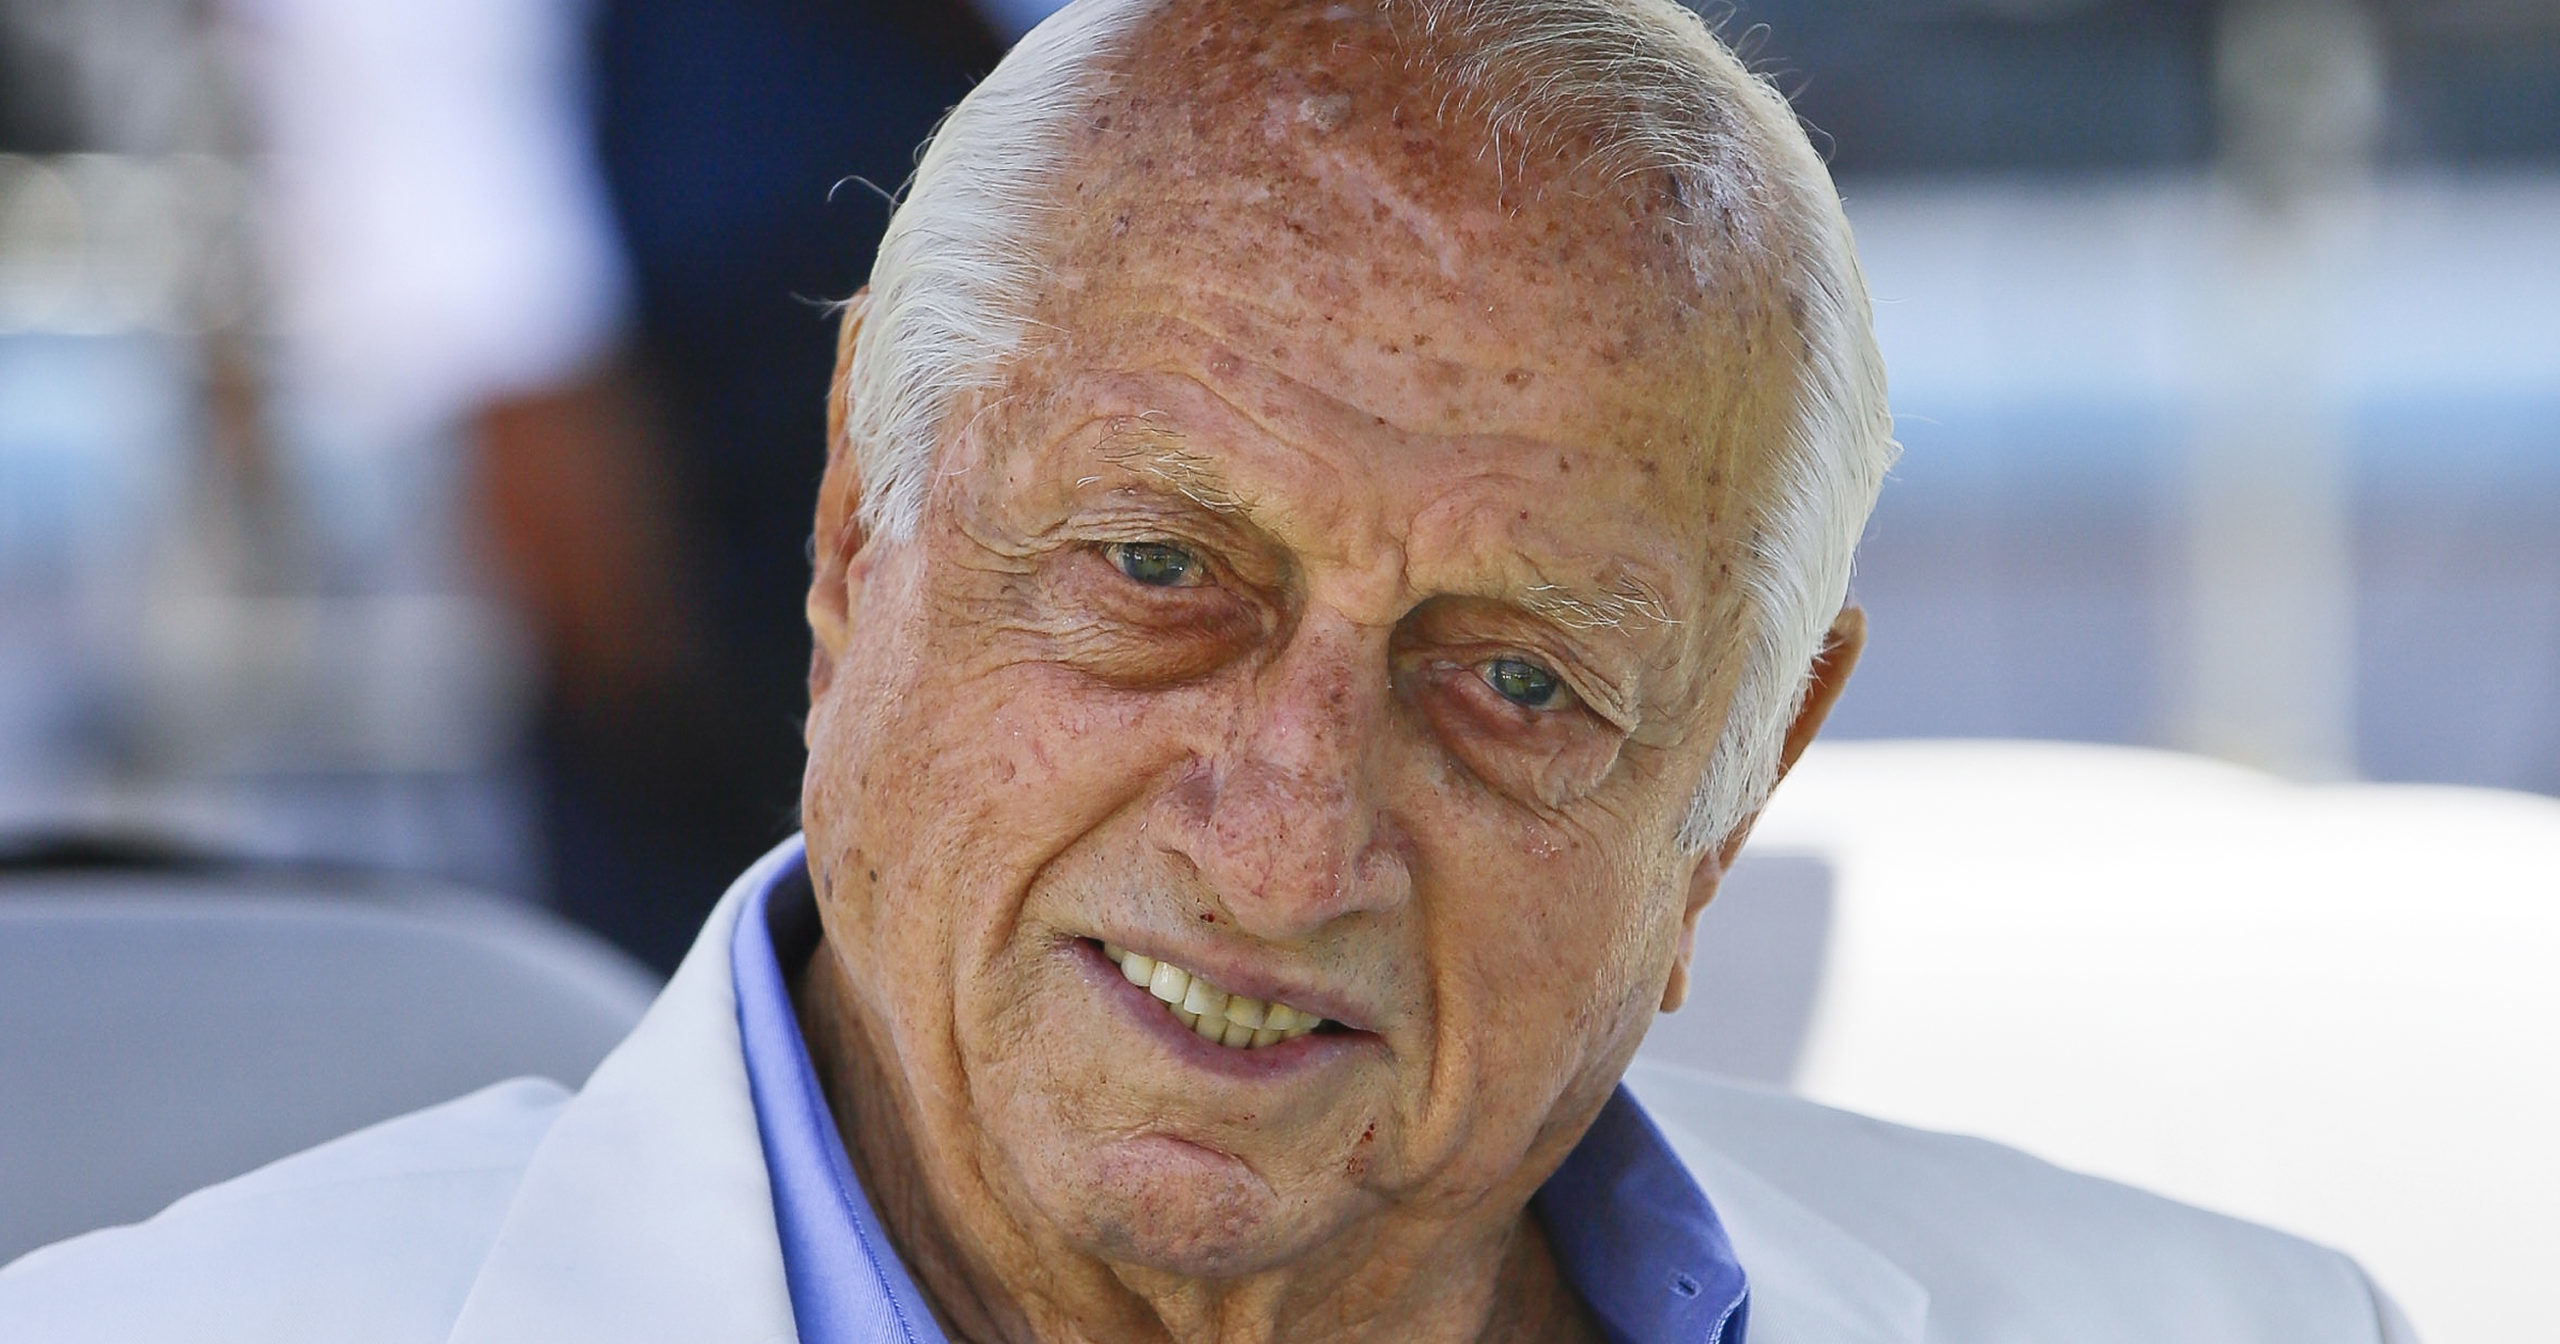 In this April 11, 2018, file photo, former Los Angeles Dodgers manager Tommy Lasorda attends a news conference in Los Angeles. Lasorda, the fiery Hall of Fame manager who guided the Los Angeles Dodgers to two World Series titles and later became an ambassador for the sport he loved during his 71 years with the franchise, has died. He was 93. The Dodgers said Friday that he had a heart attack at his home in Fullerton, California.